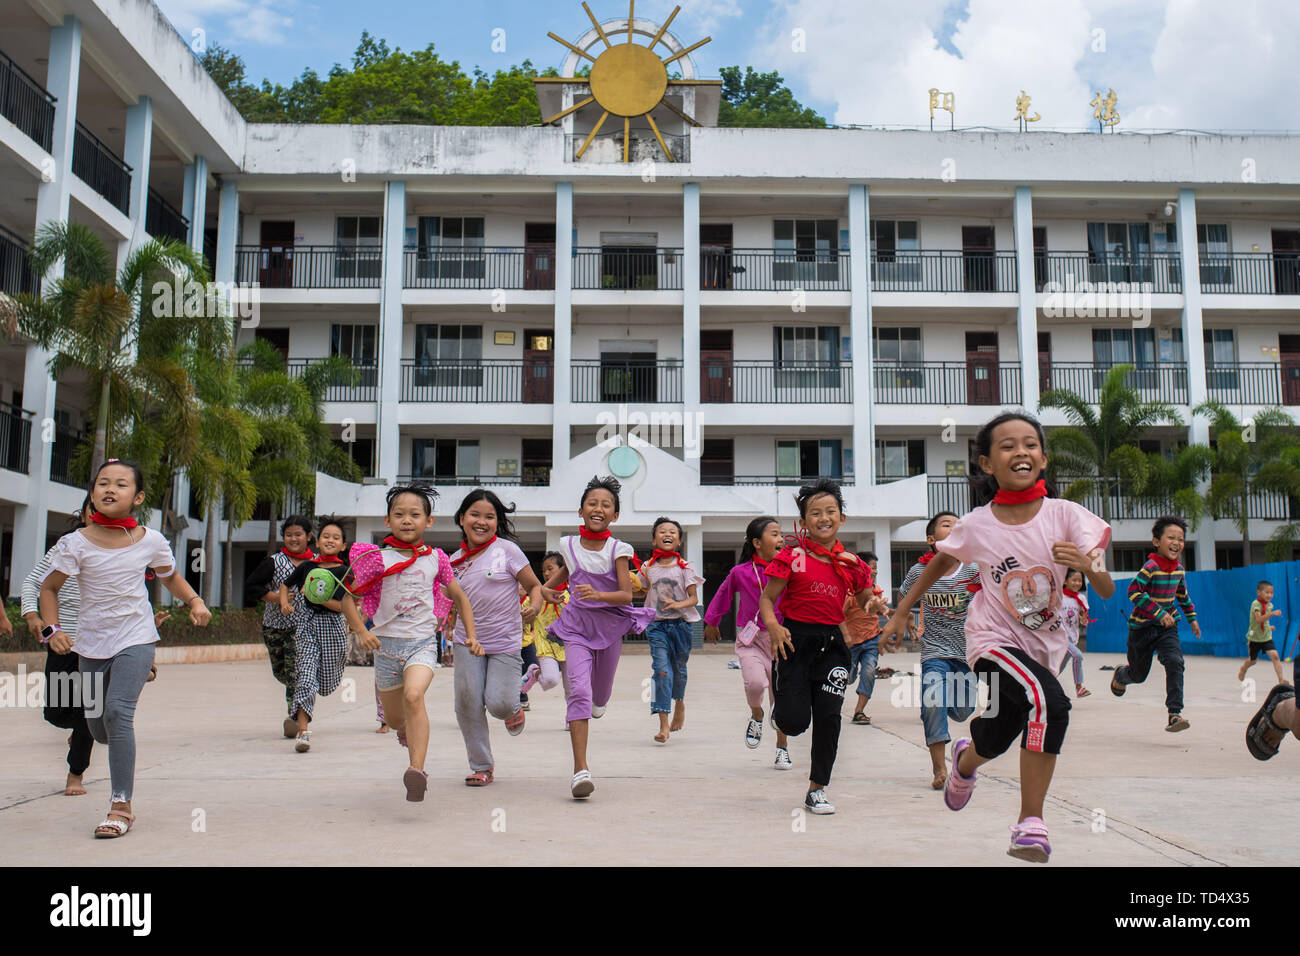 (190612) -- JINGHONG, June 12, 2019 (Xinhua) -- Pupil run at a school in Jino Ethnic Township on Jino Mountain in Jinghong of Xishuangbanna Dai Autonomous Prefecture, southwest China's Yunnan Province, June 11, 2019. With a population of slightly over 20,000, the Jino people had only been officially acknowledged in 1979 as an independent ethnic group of China. Until 1949, most of them had lived for generations in primitive mountain tribes in southwest China's Yunnan Province. Currently, the primary education in Jino Ethnic Township achieved 100 percent coverage for all school-age children. (Xi - Stock Image